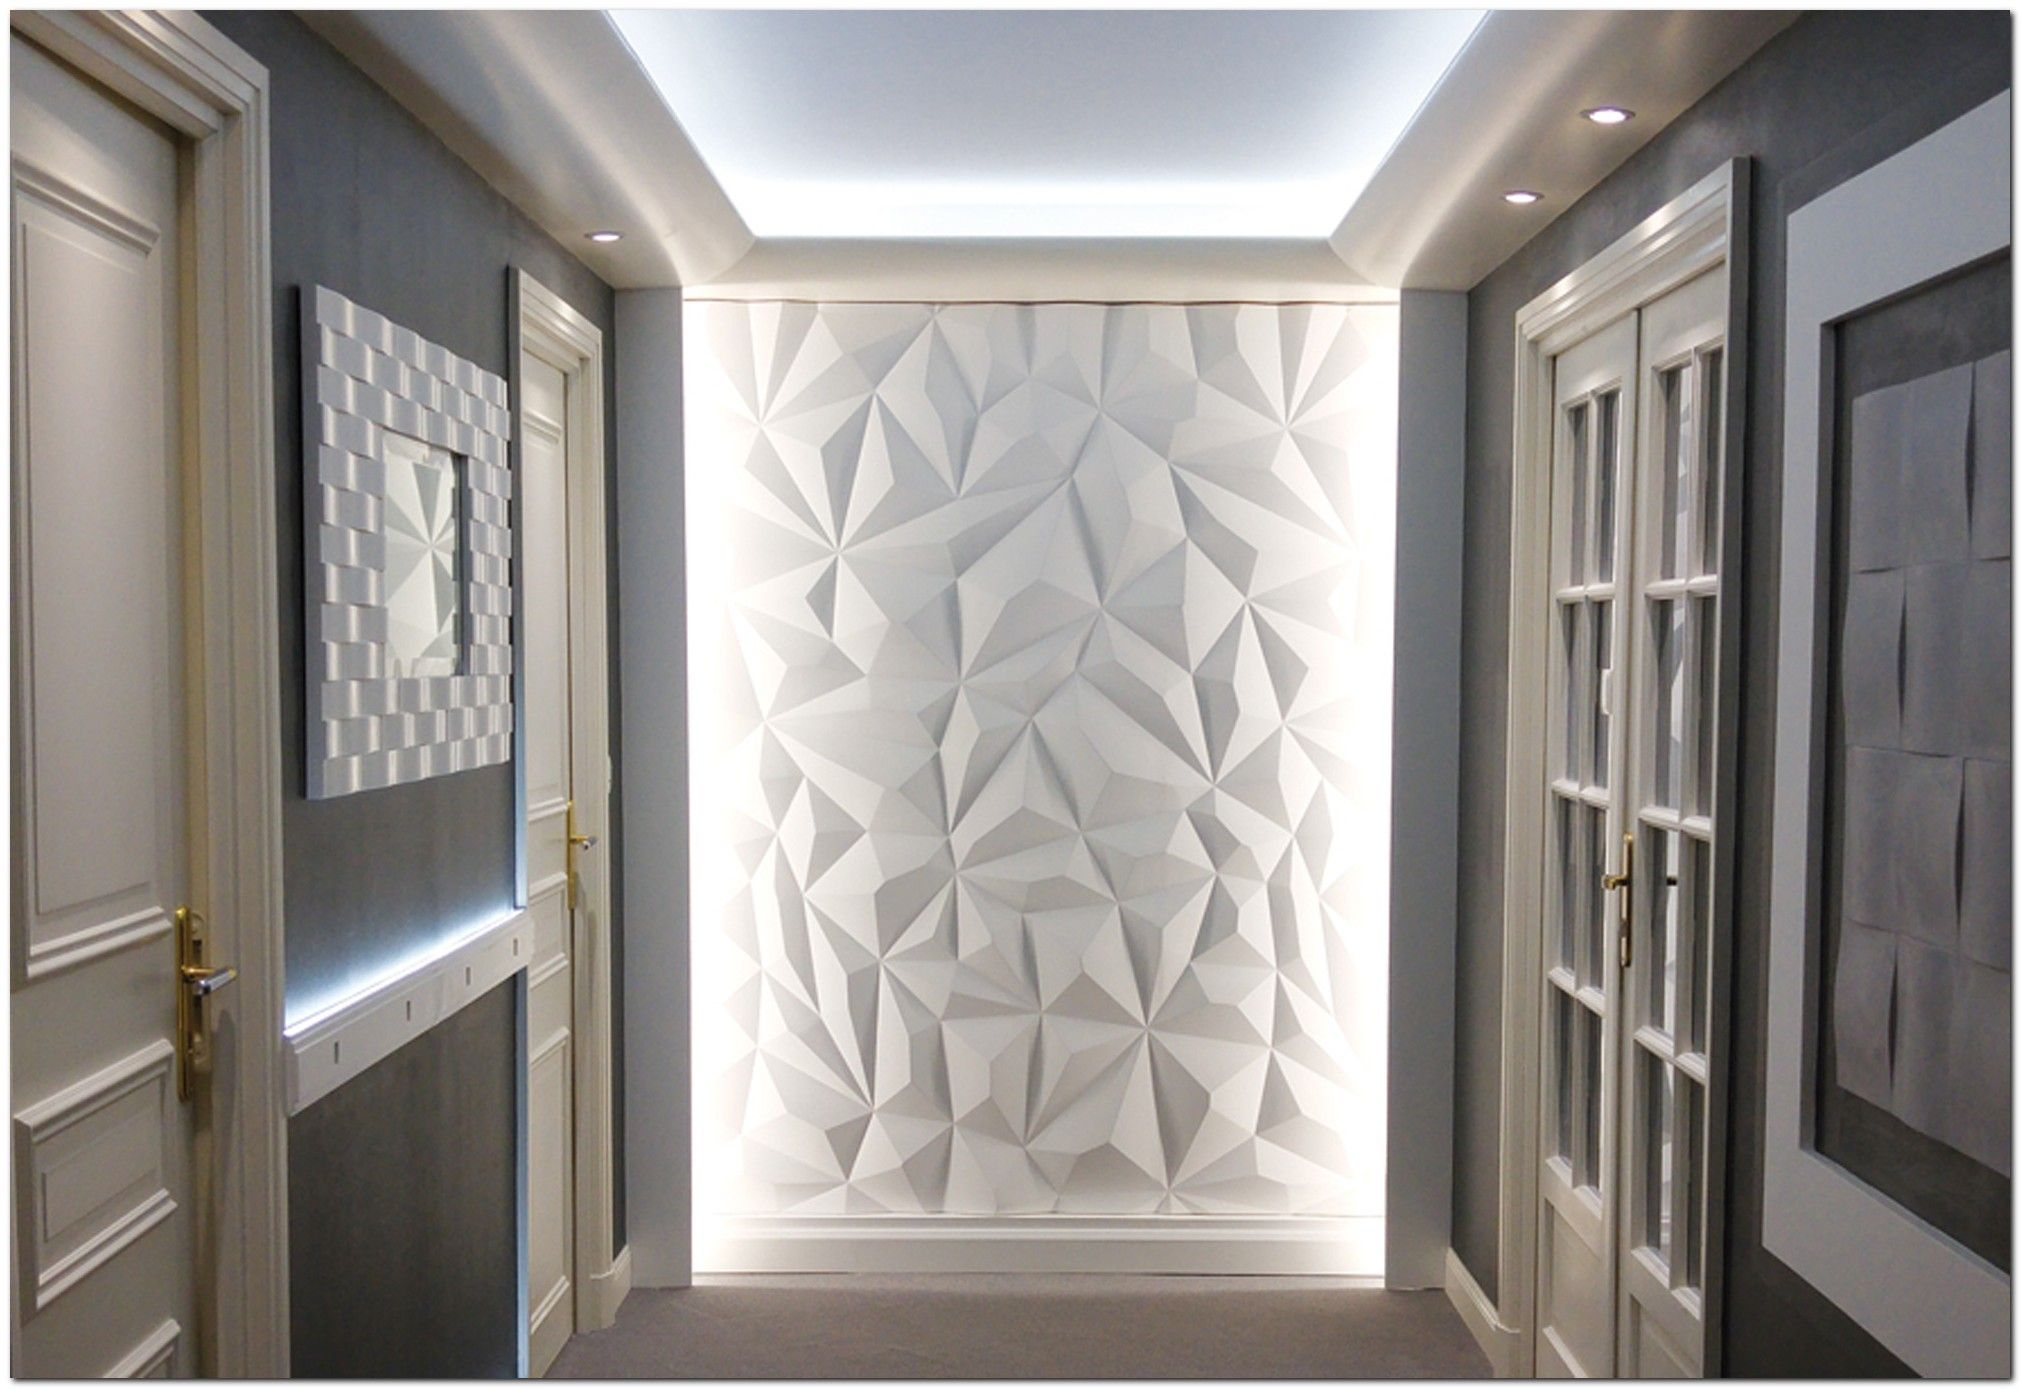 50 Stunning Mdf Wall Panel For Small Home The Urban Interior Mdf Wall Panels Textured Wall Panels Decorative Wall Panels